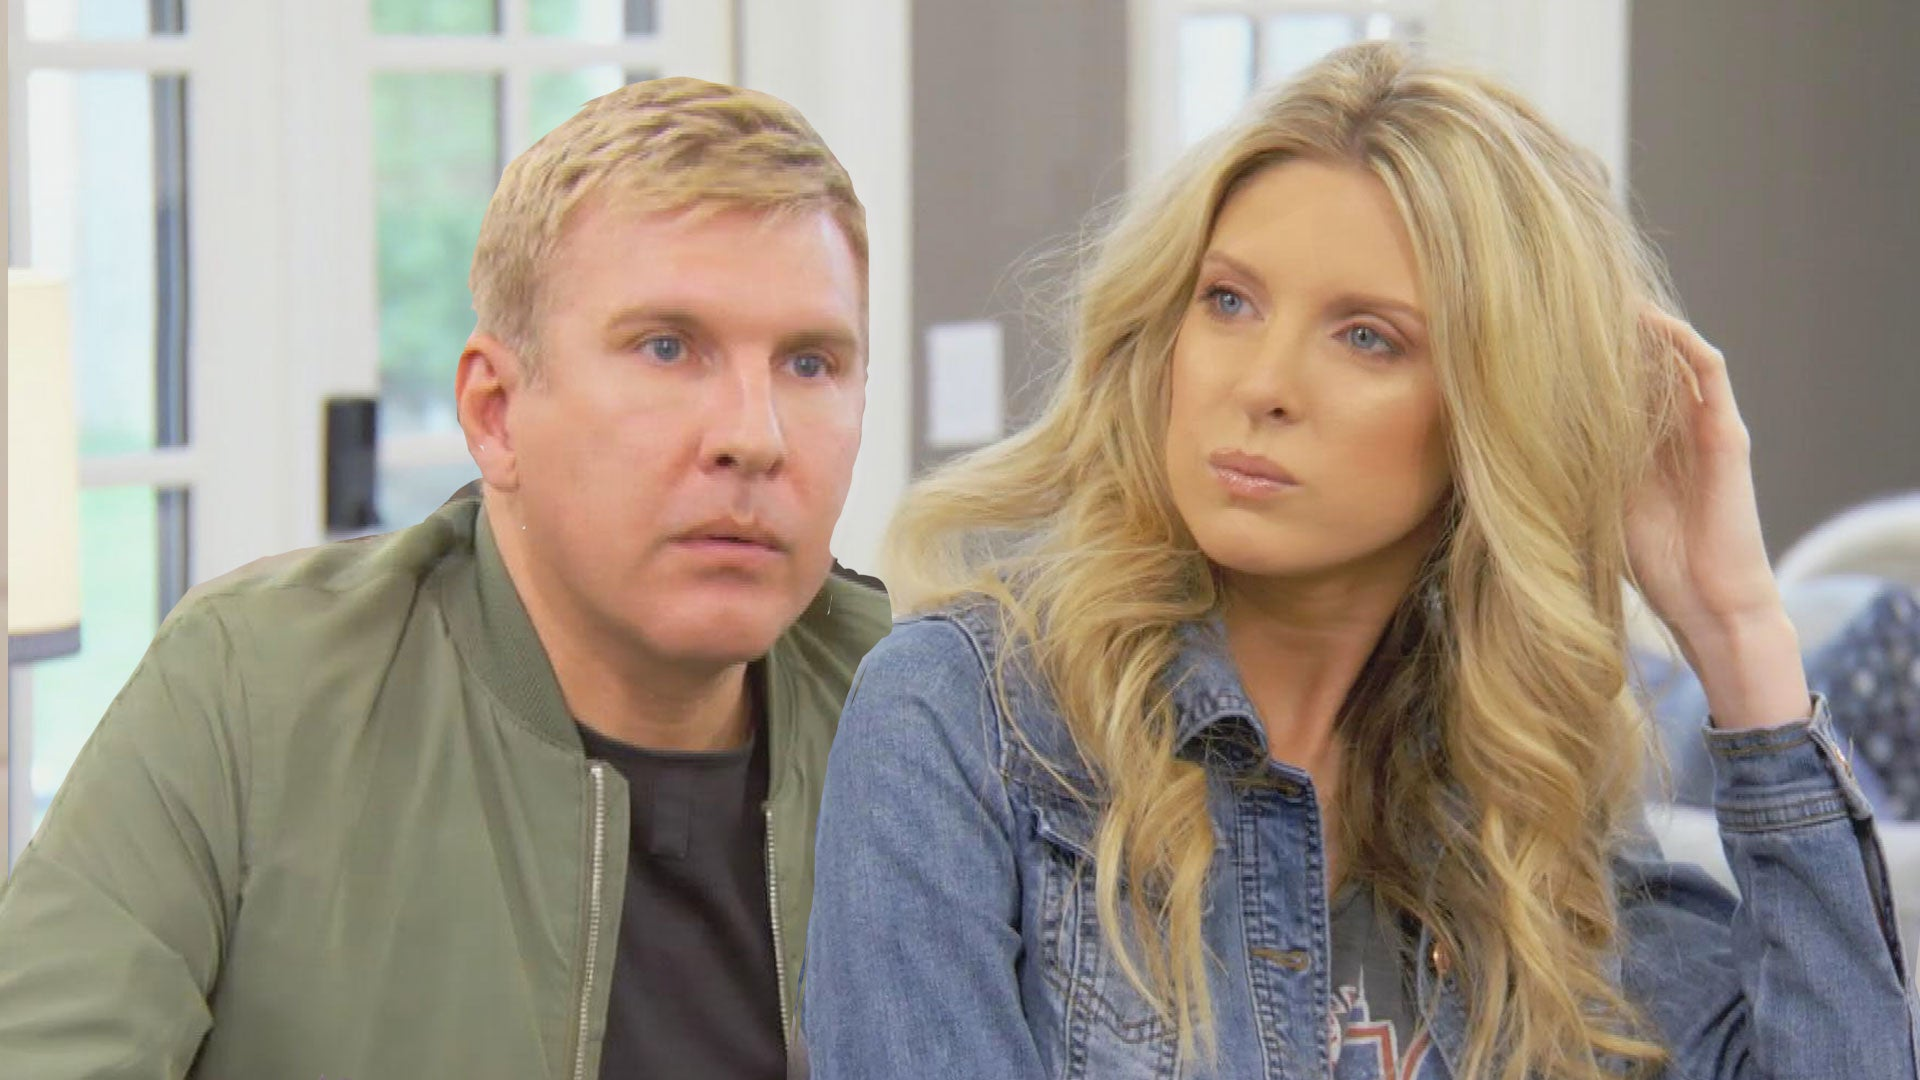 Lindsie Chrisley Fires Back at Parents After They Accuse Her of Relationship With Tax Investigator